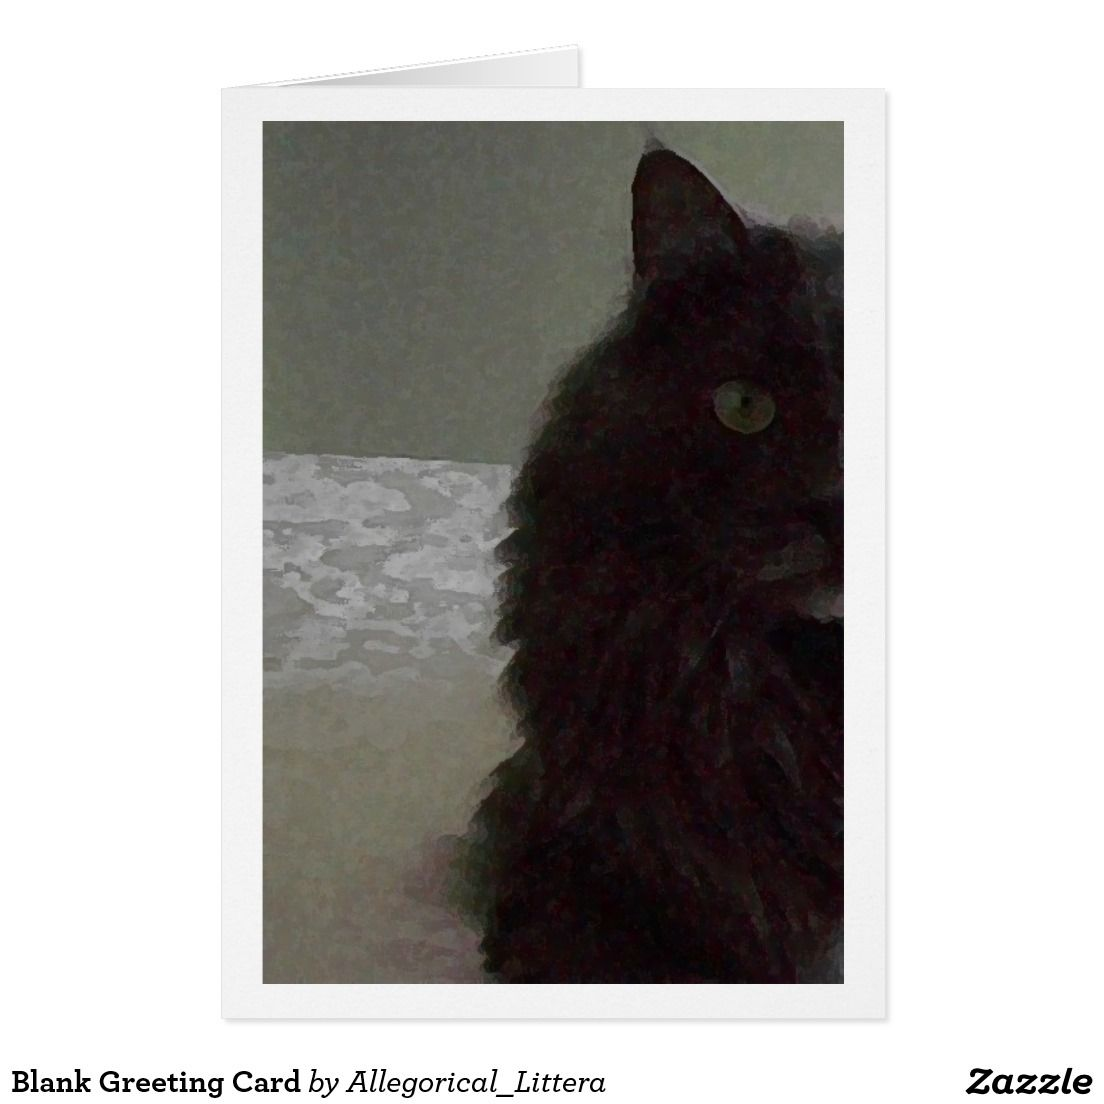 Greeting card on zazzle store name allegoricallittera blank greeting card on zazzle store name allegoricallittera blank for your own message kristyandbryce Image collections